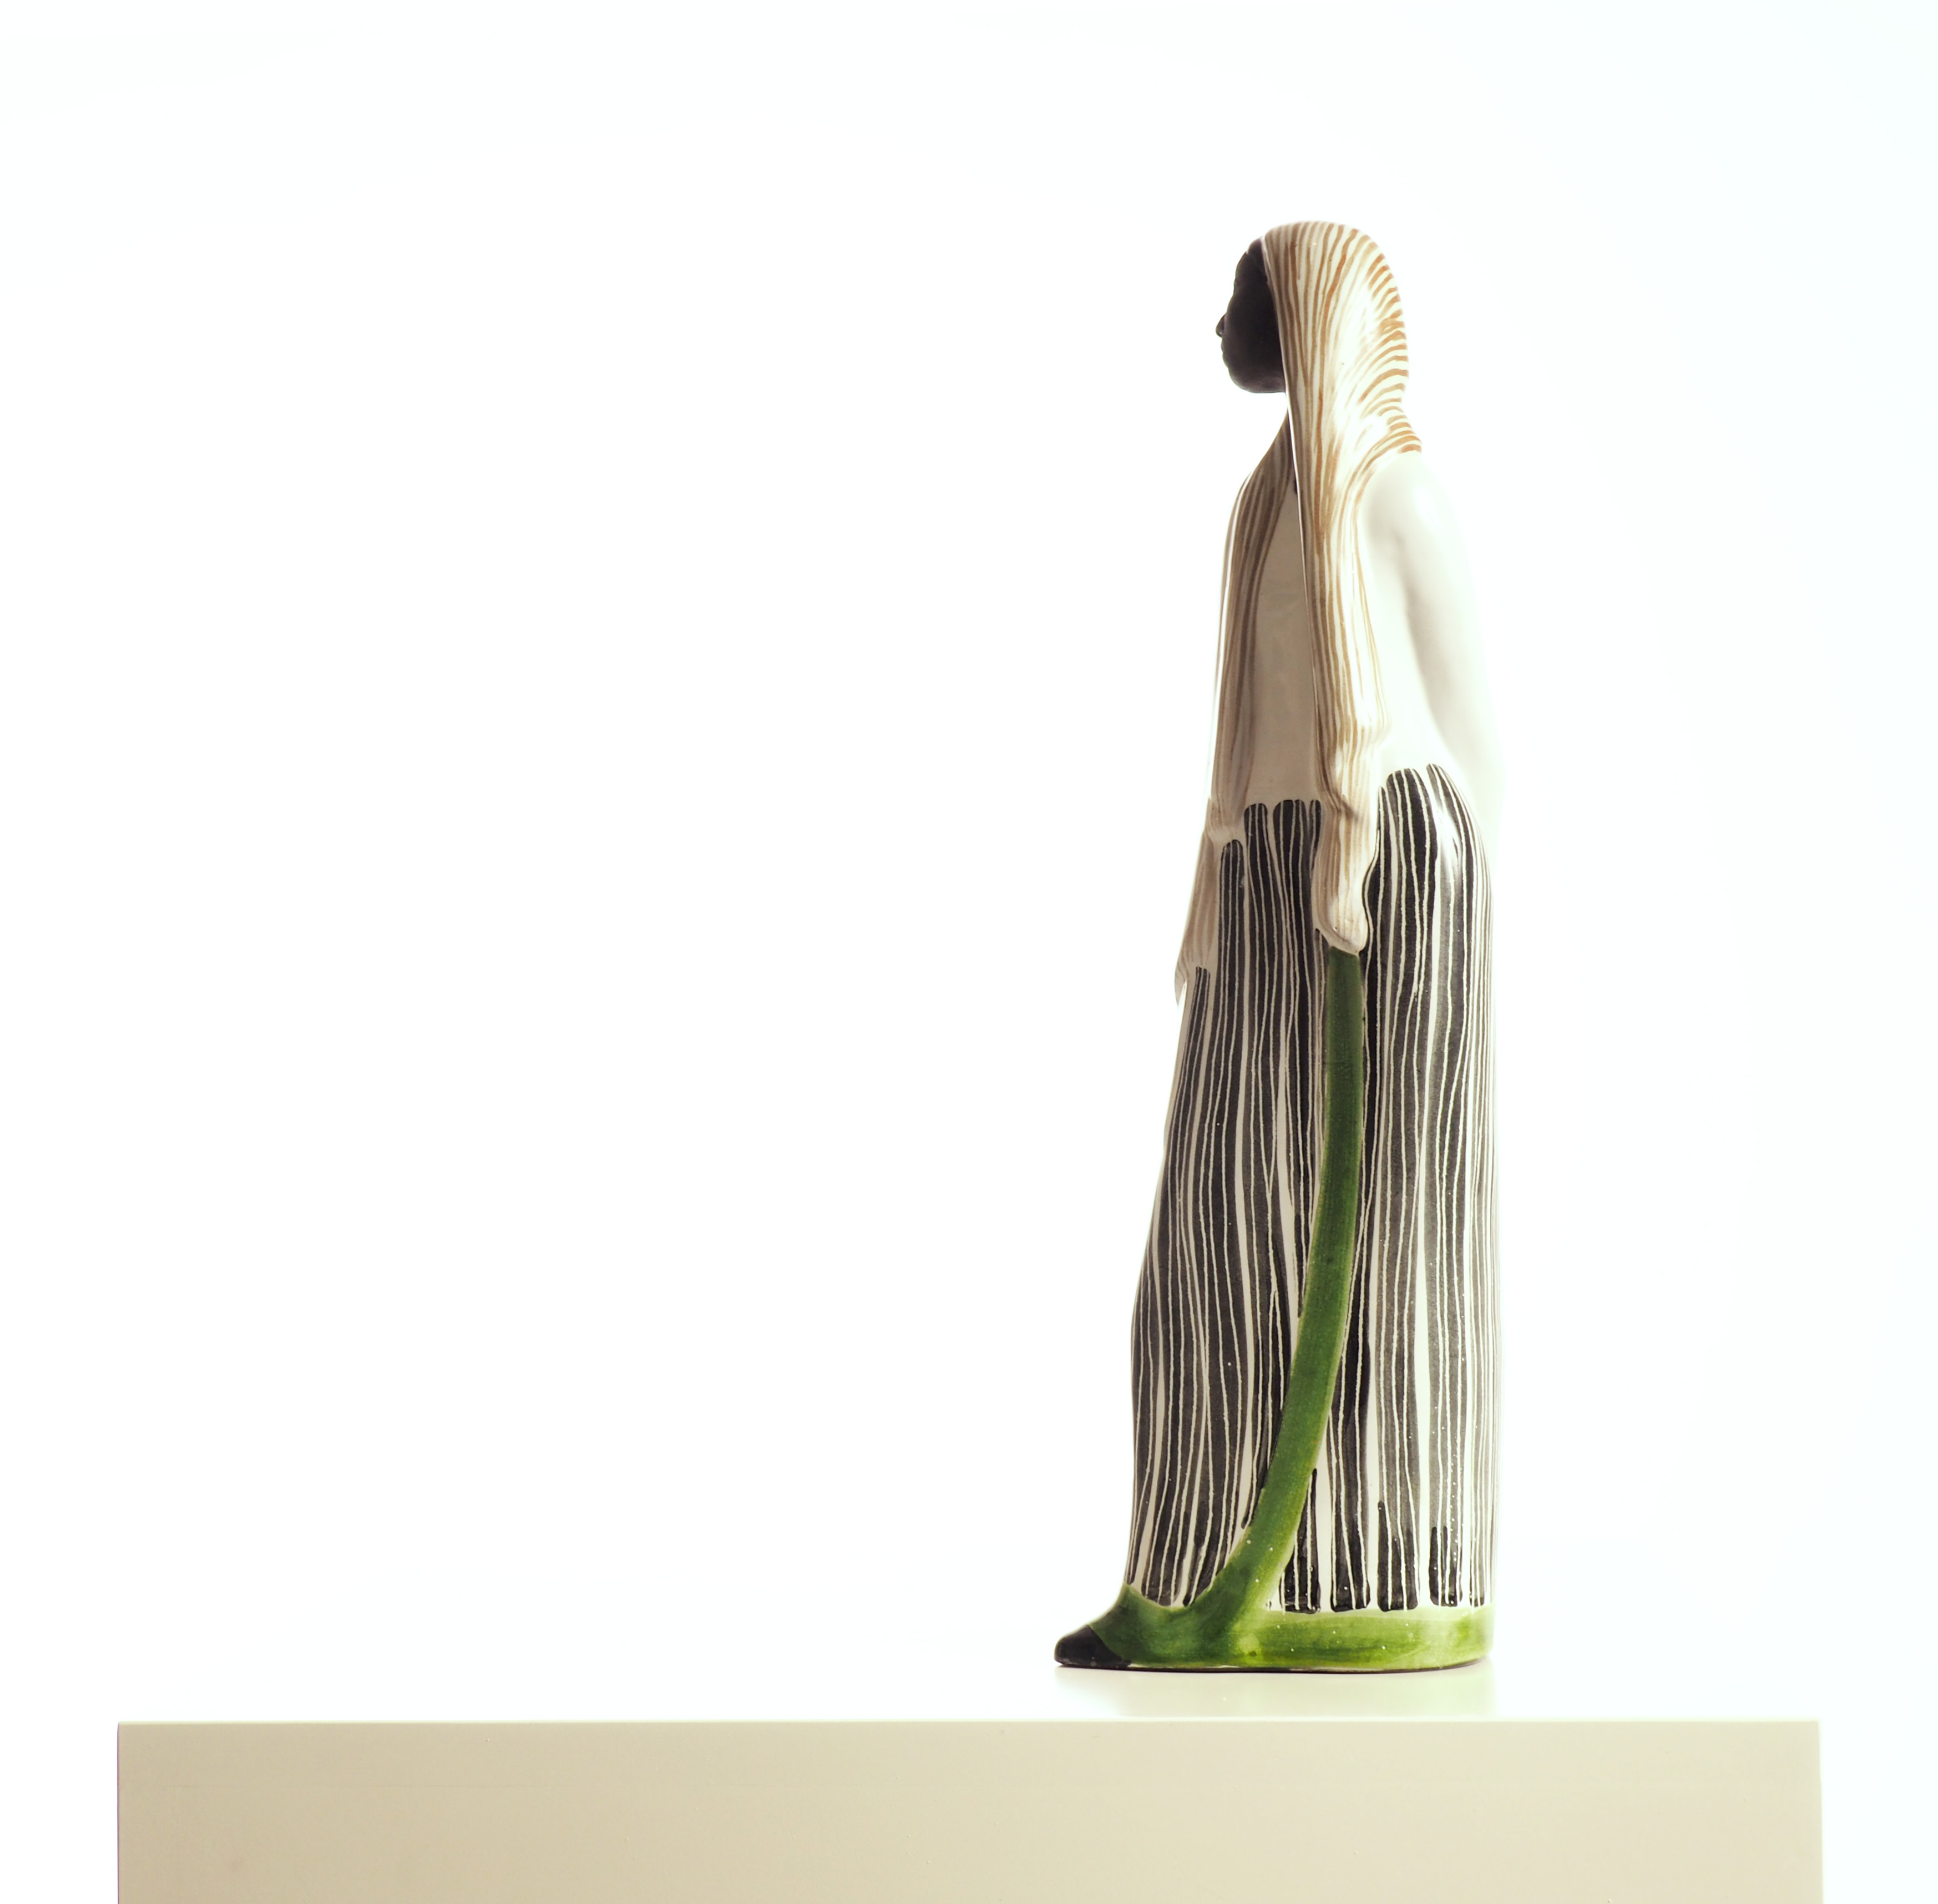 Sculpture by Mari Simmulson